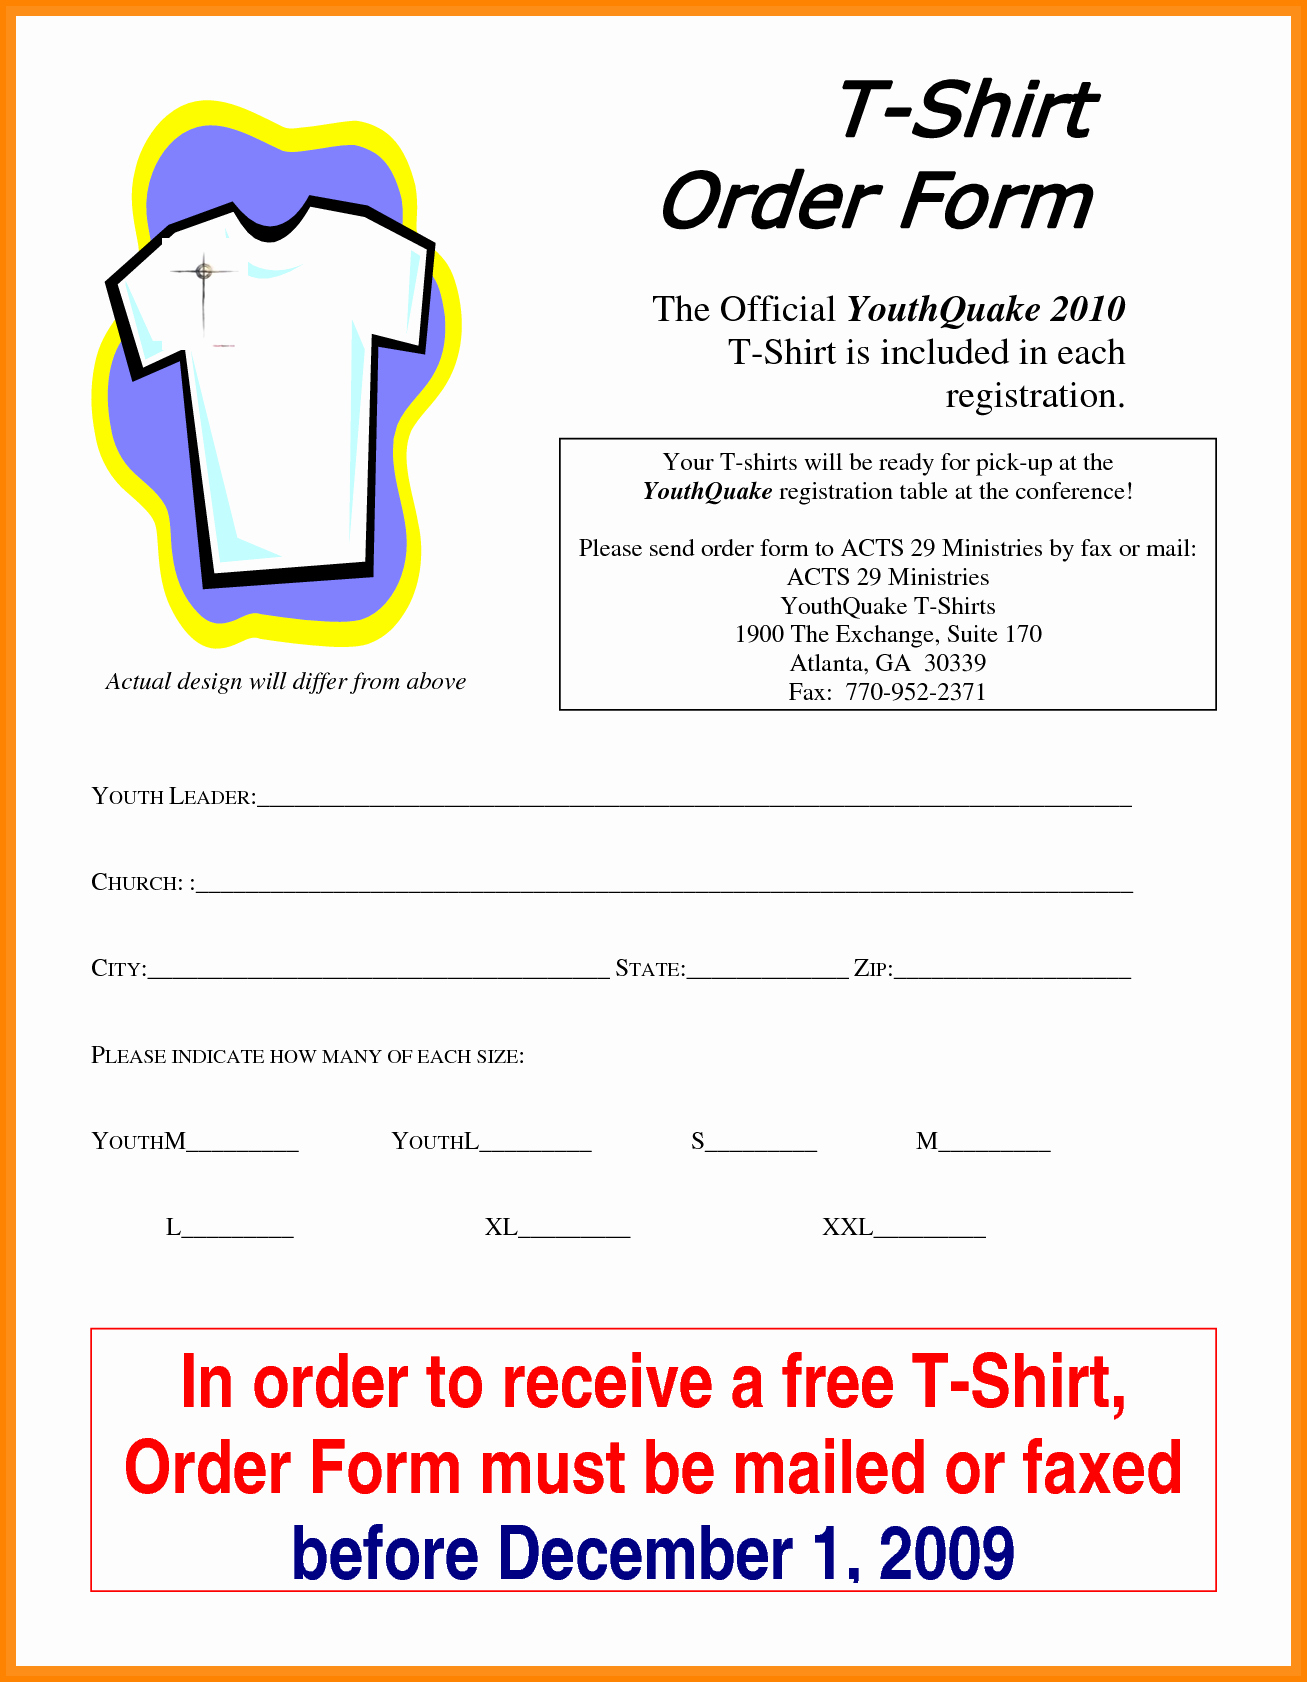 T Shirt Invoice Template New 5 T Shirt order form Template Excel